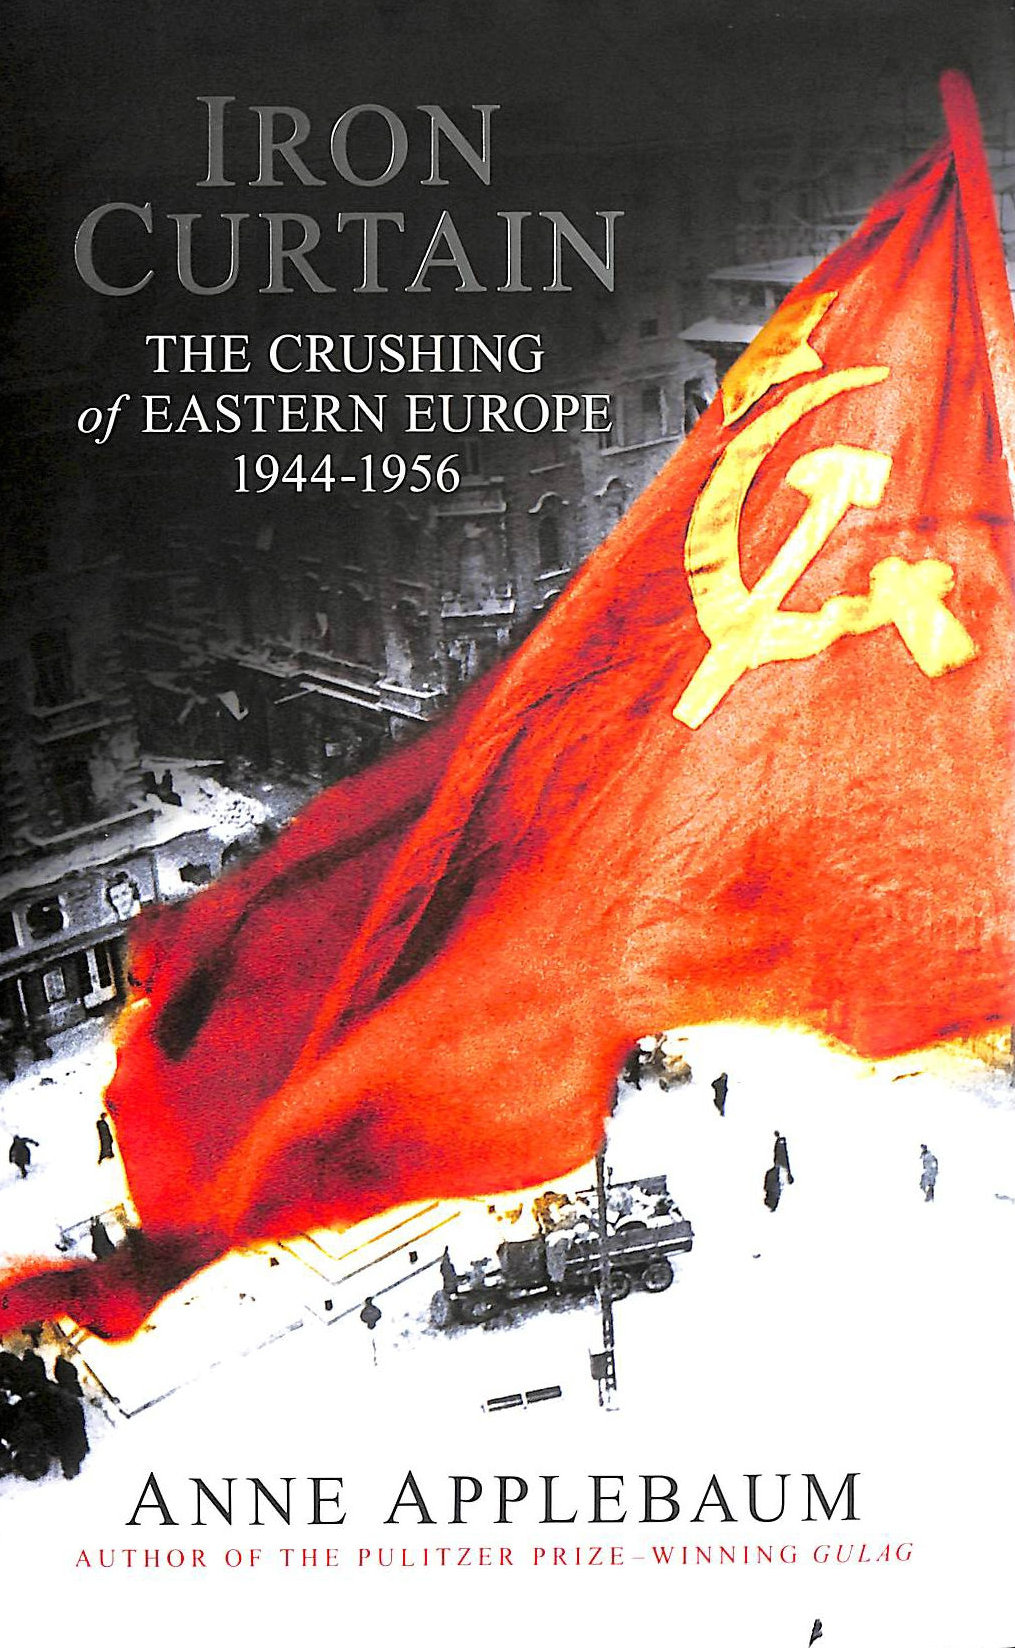 Image for Iron Curtain: The Crushing of Eastern Europe 1944-56